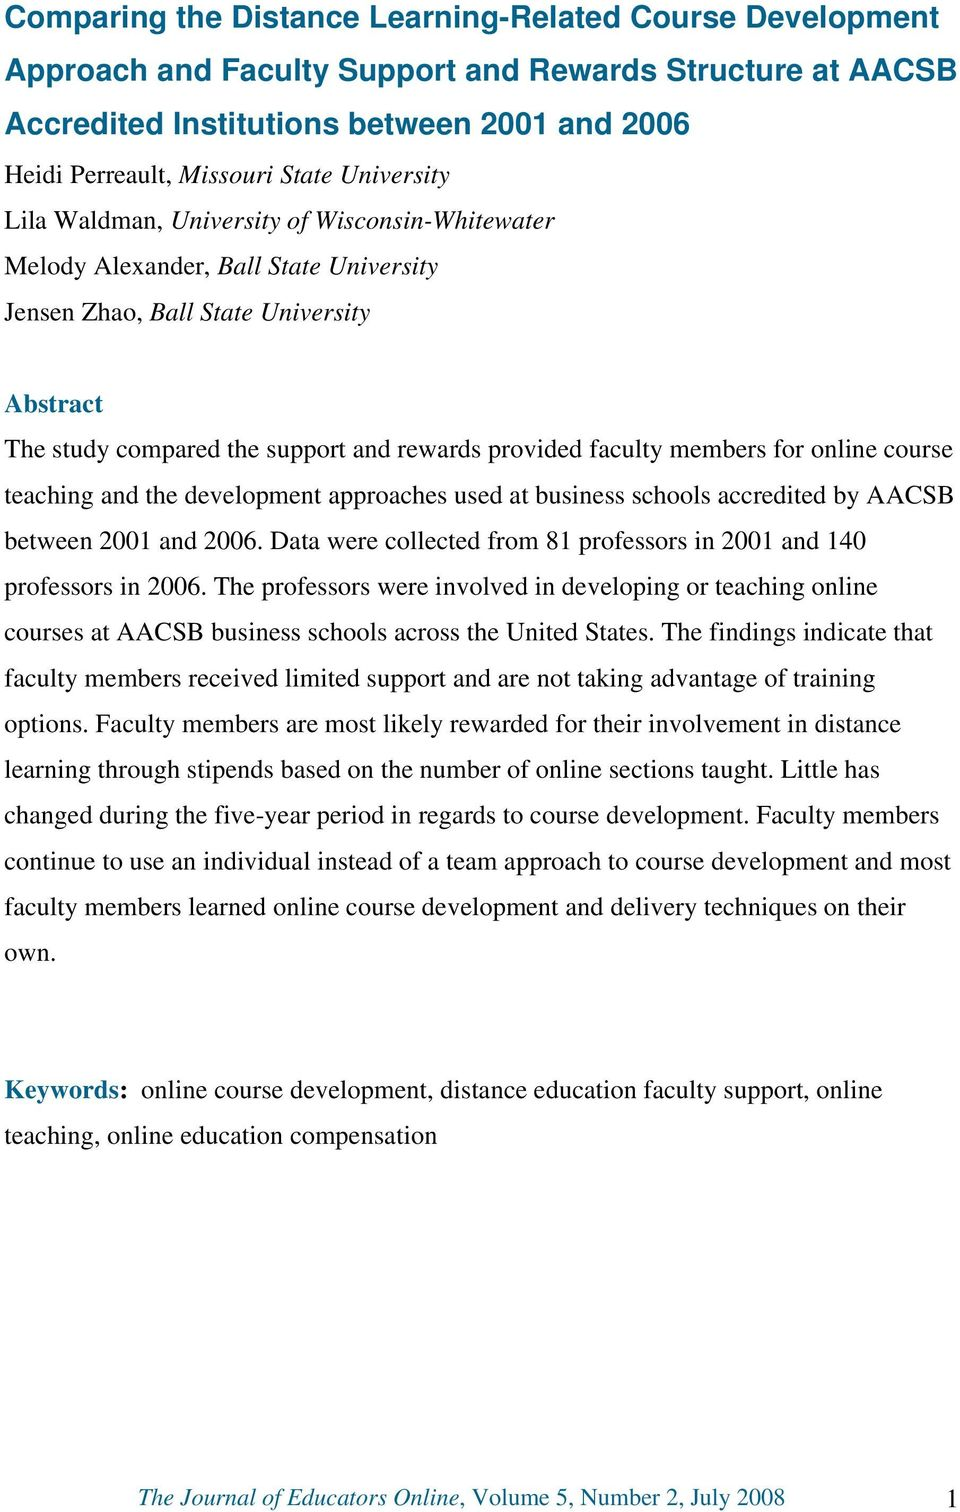 faculty members for online course teaching and the development approaches used at business schools accredited by AACSB between 2001 and 2006.